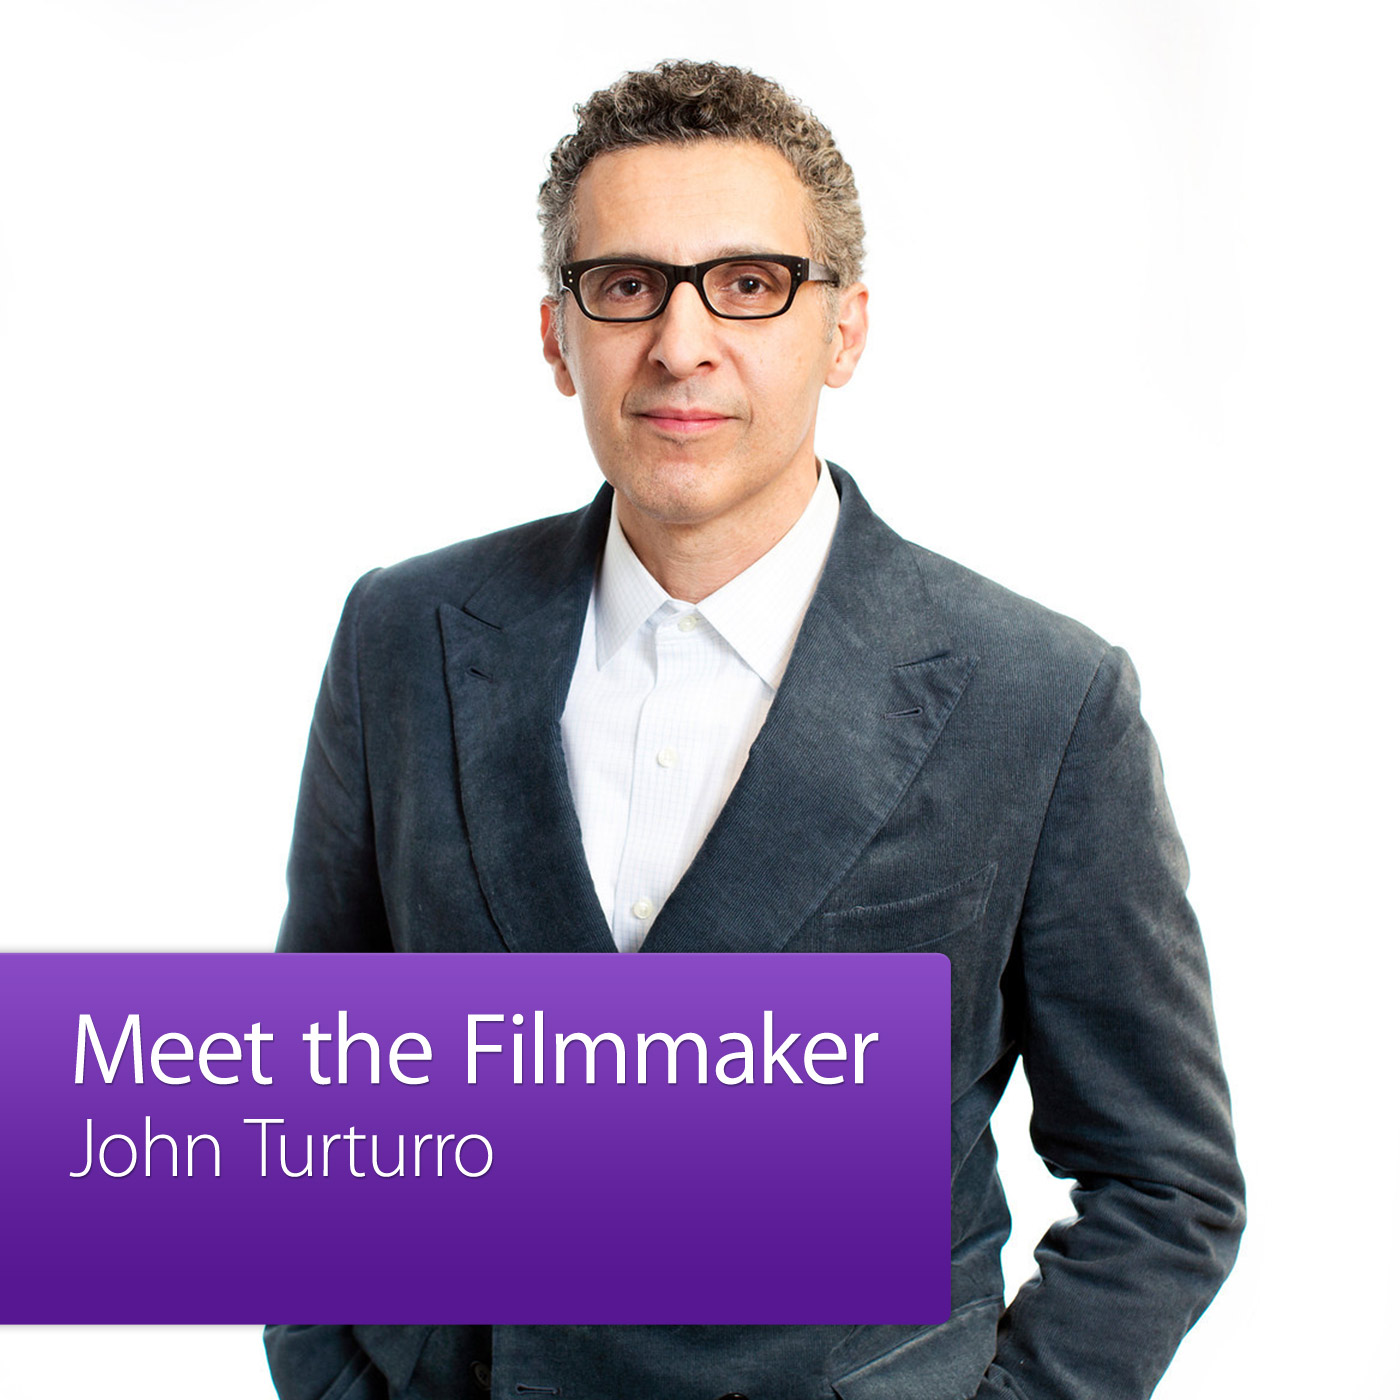 John Turturro: Meet the Filmmaker